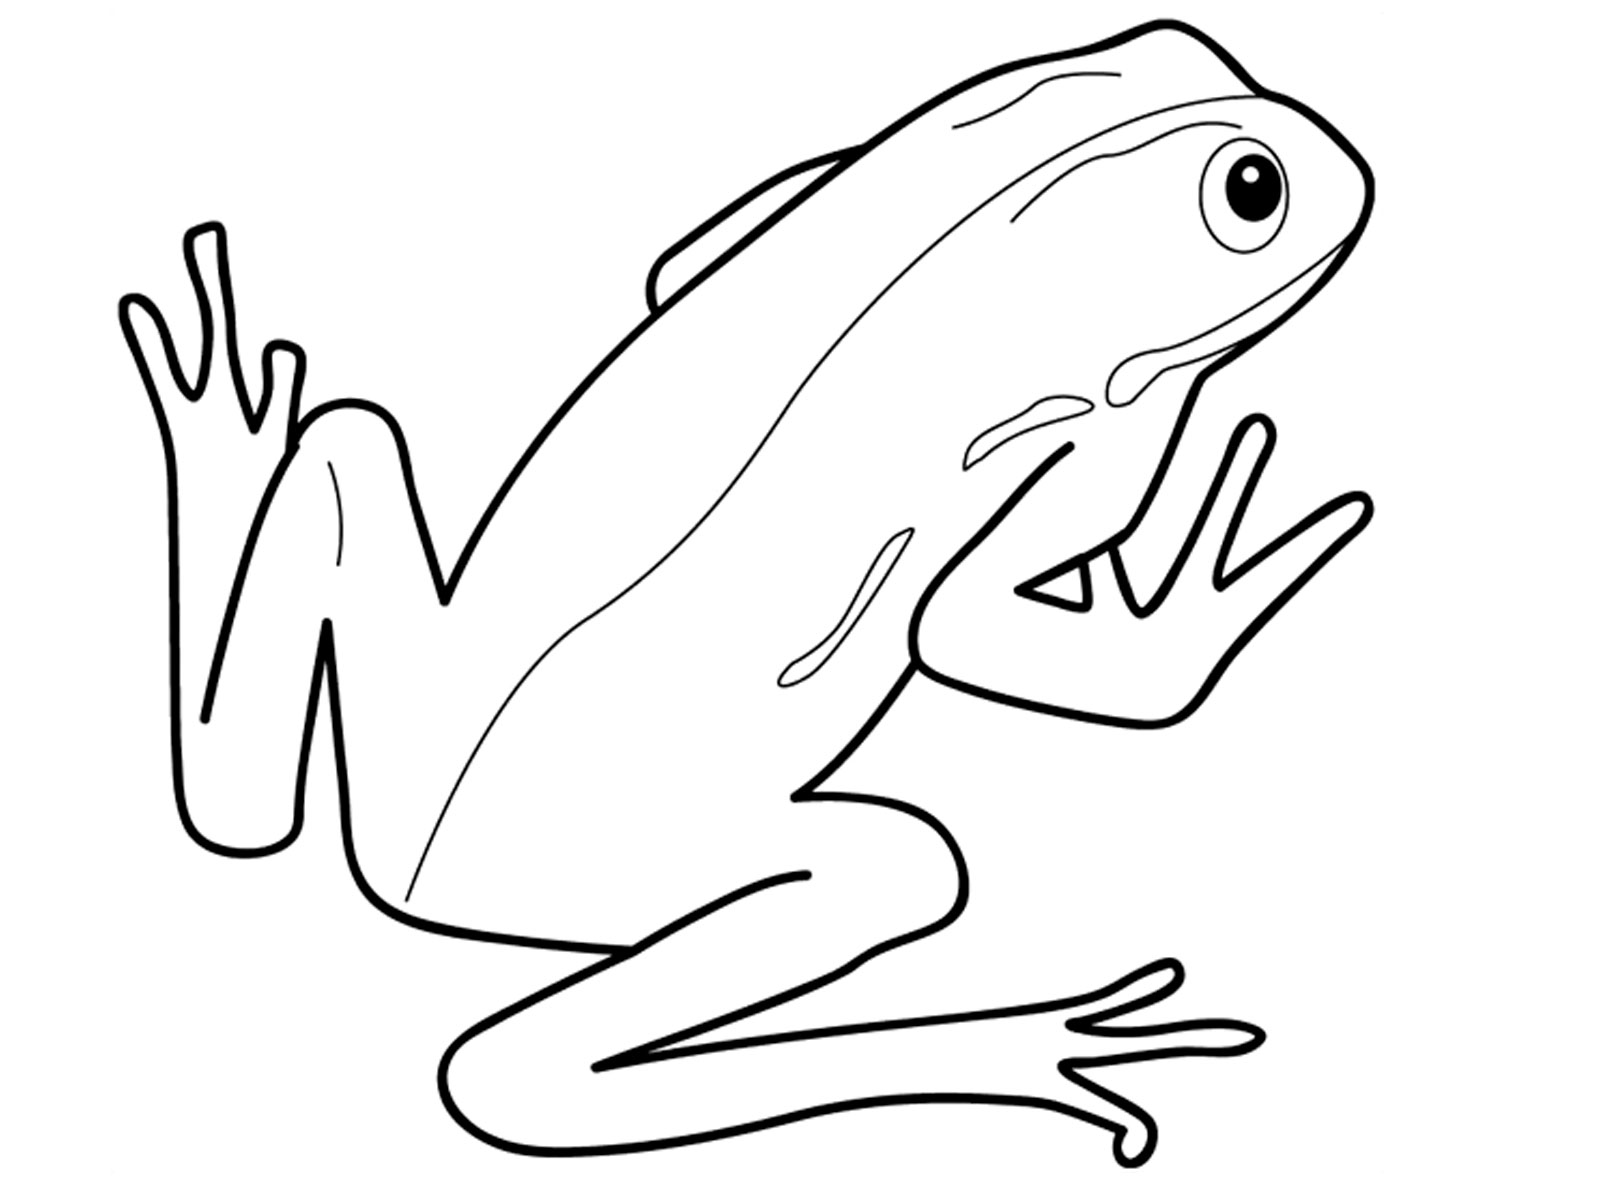 Amphibian Drawing At Getdrawings